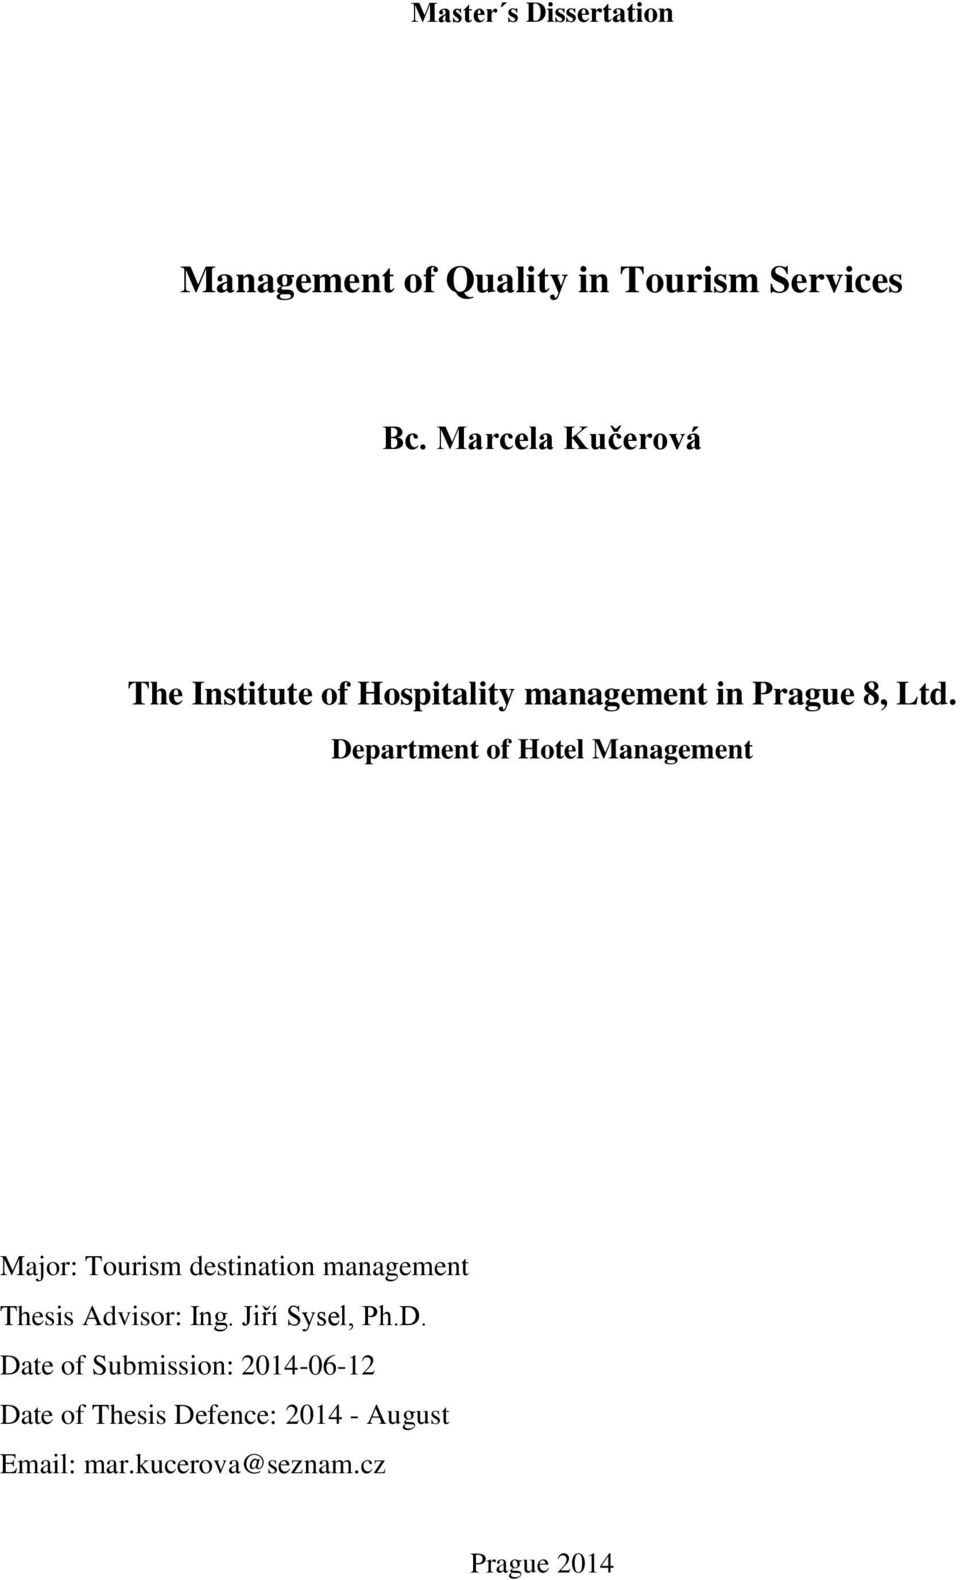 thesis about hotel services